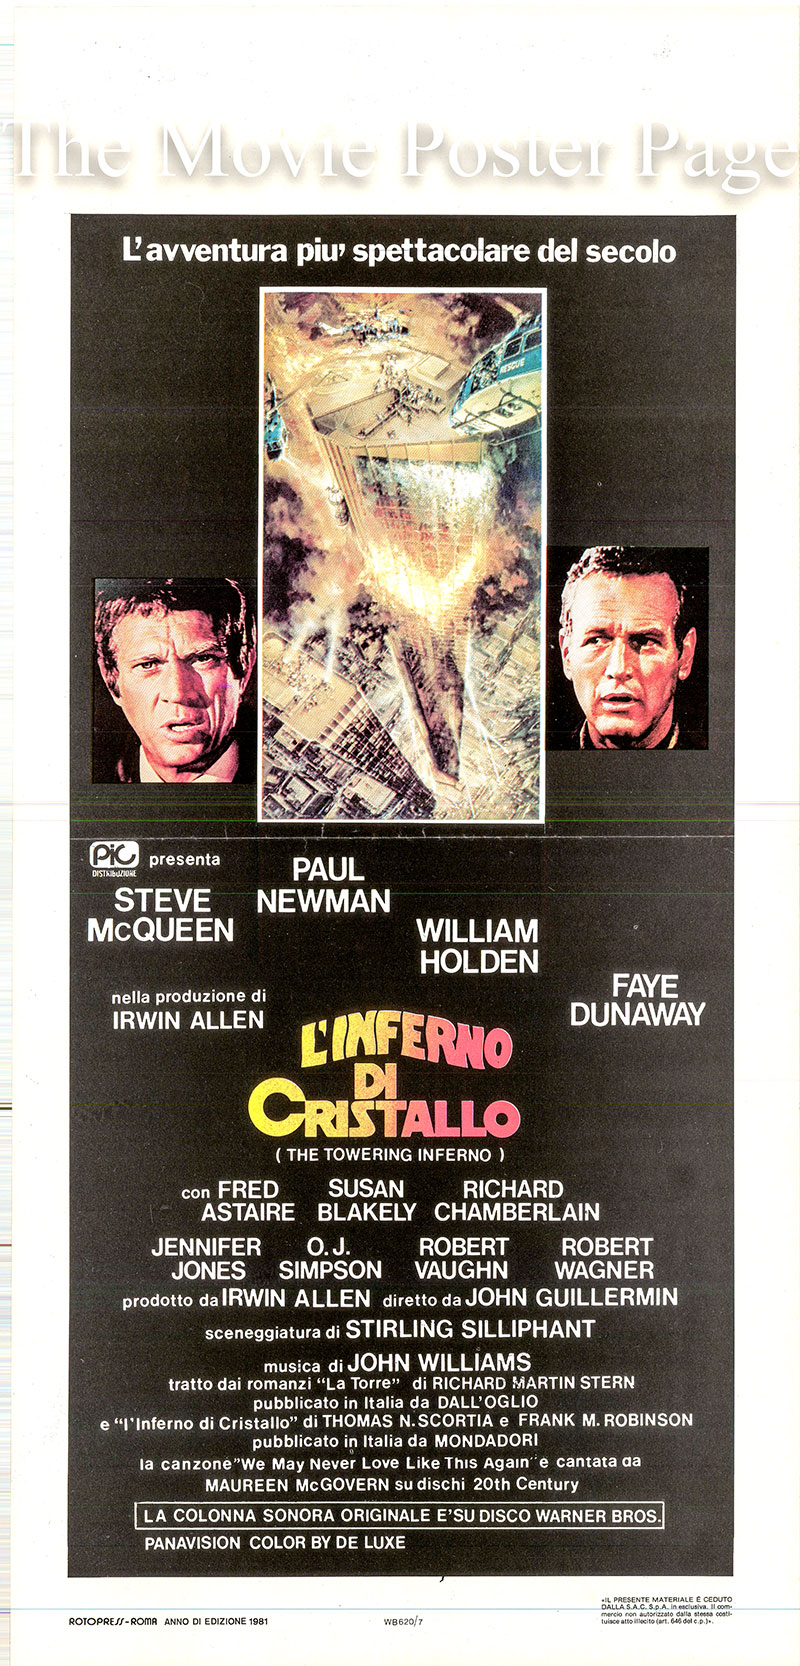 Pictured is an Italian locandina poster for the 1974 John Guillermin film The Towering Inferno starring Steve McQueen as Chief O'Hallorhan.